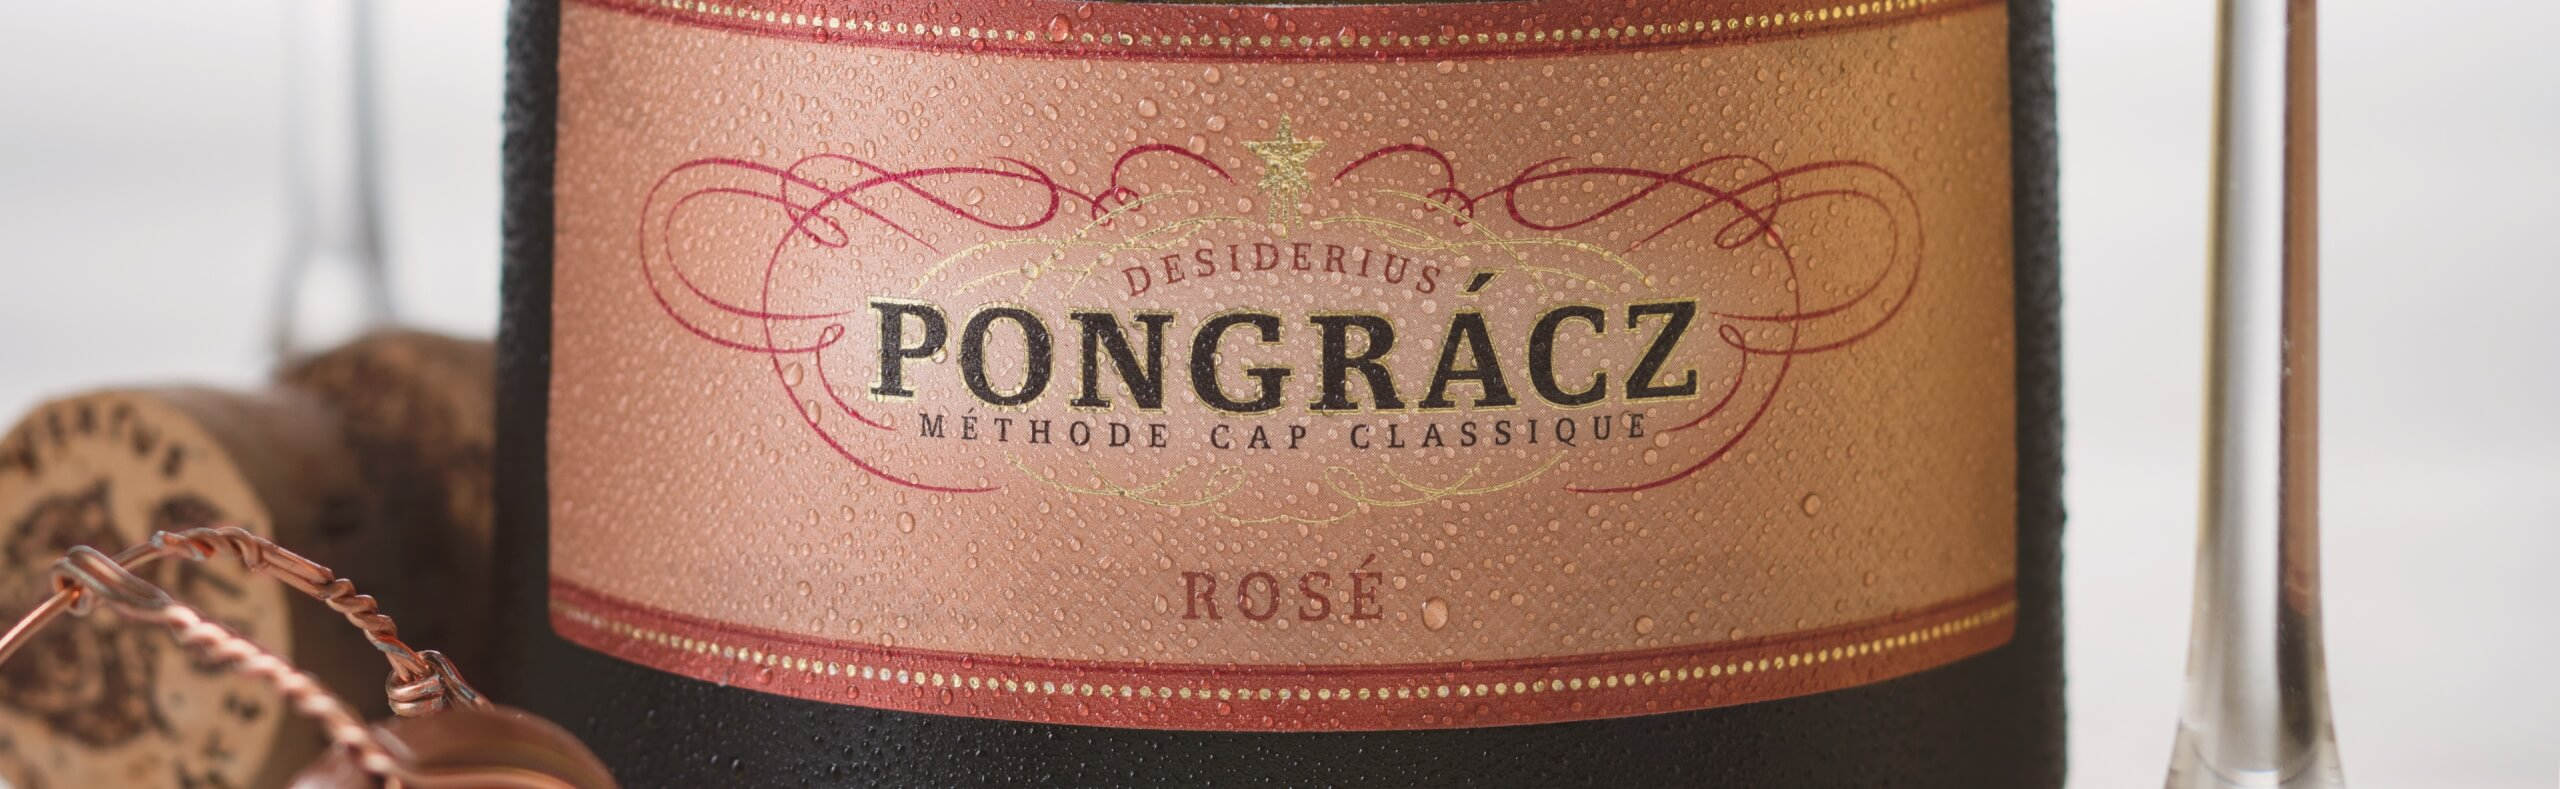 Close-up shot of Pongracz Rosé chilled on ice.